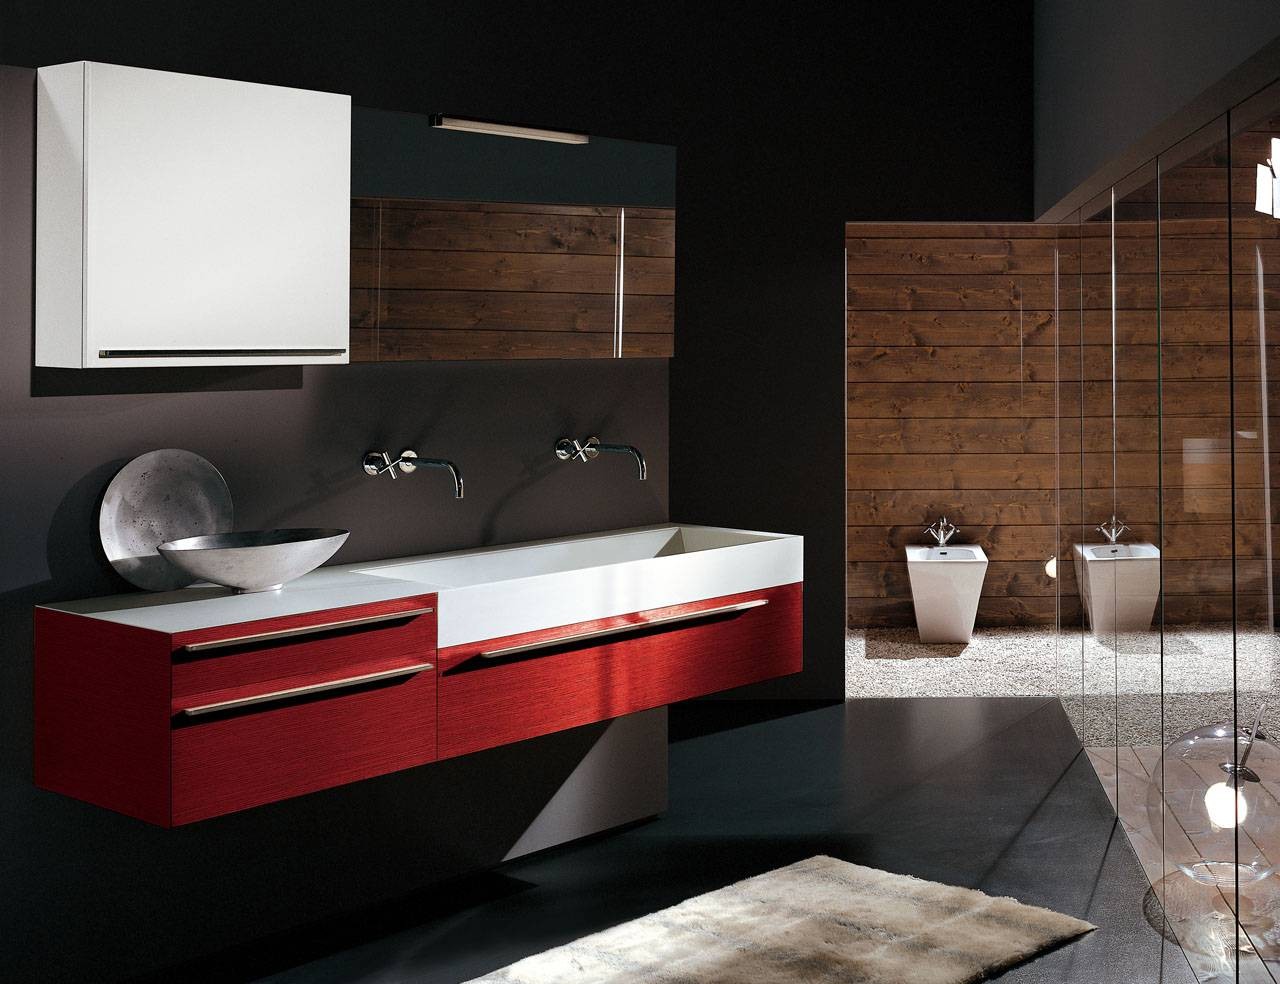 Black Bathroom Interior Design Ideas with Photos and Remodeling Advice. Red vanity and wooden wall of the contemporary styled area